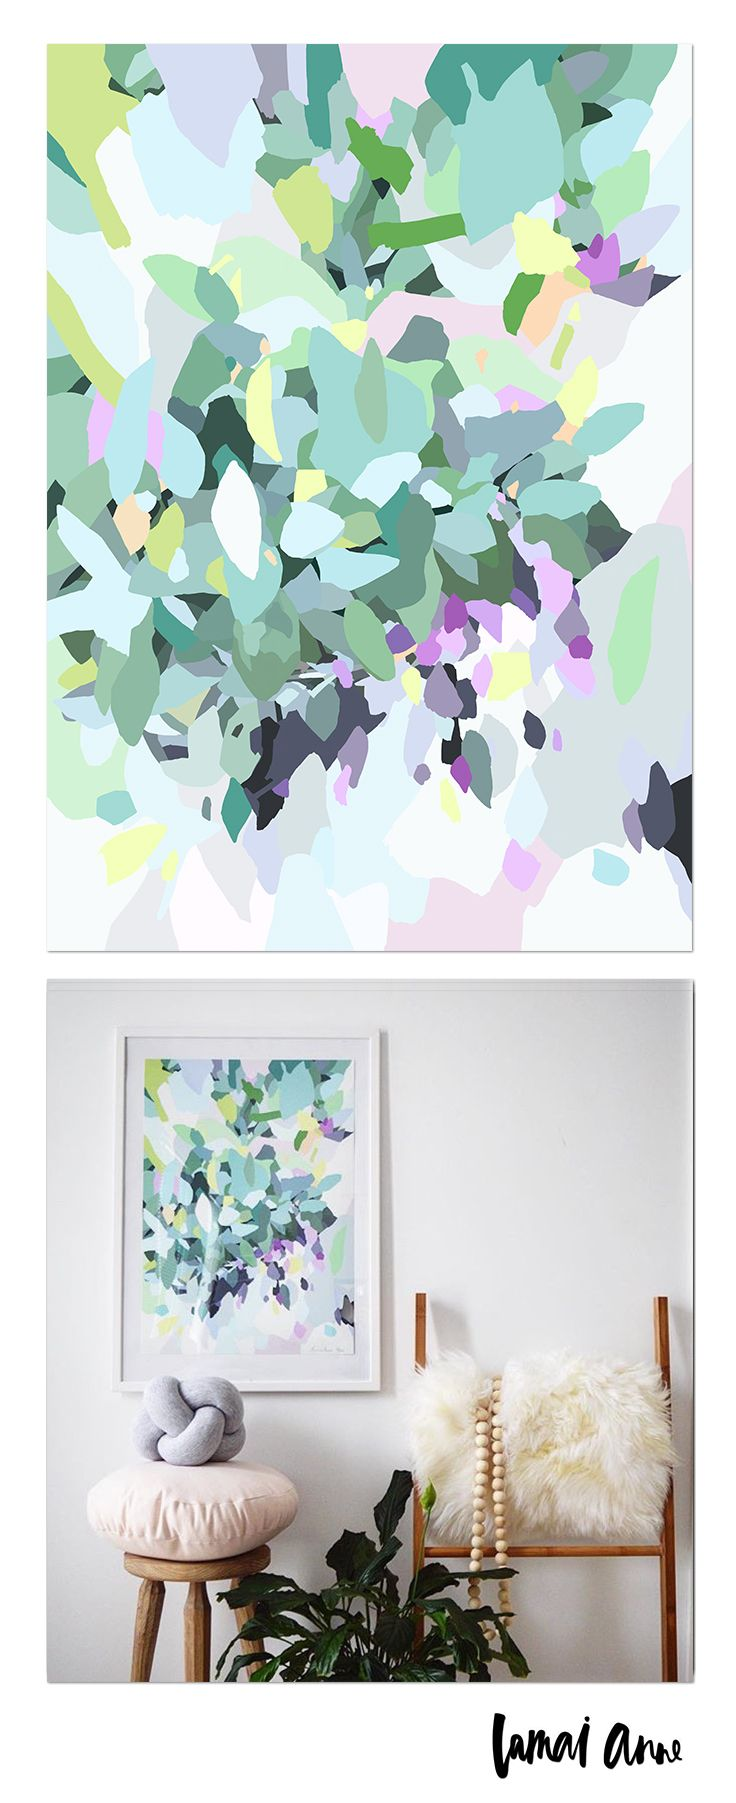 Gumtree abstract limited edition giclee art print by Australian artist Lamai Anne. What a wonderful way of bringing the Australian outdoors and a real pop of colour into your home. Lamai's artwork is a collaboration of Native Flora and Fauna that encompasses her home and surroundings. Her illustrations of Australian Natives are meticulously brought to life through her digital art, and the composition between the seasons to create vivid, colourful and eye catching pieces.